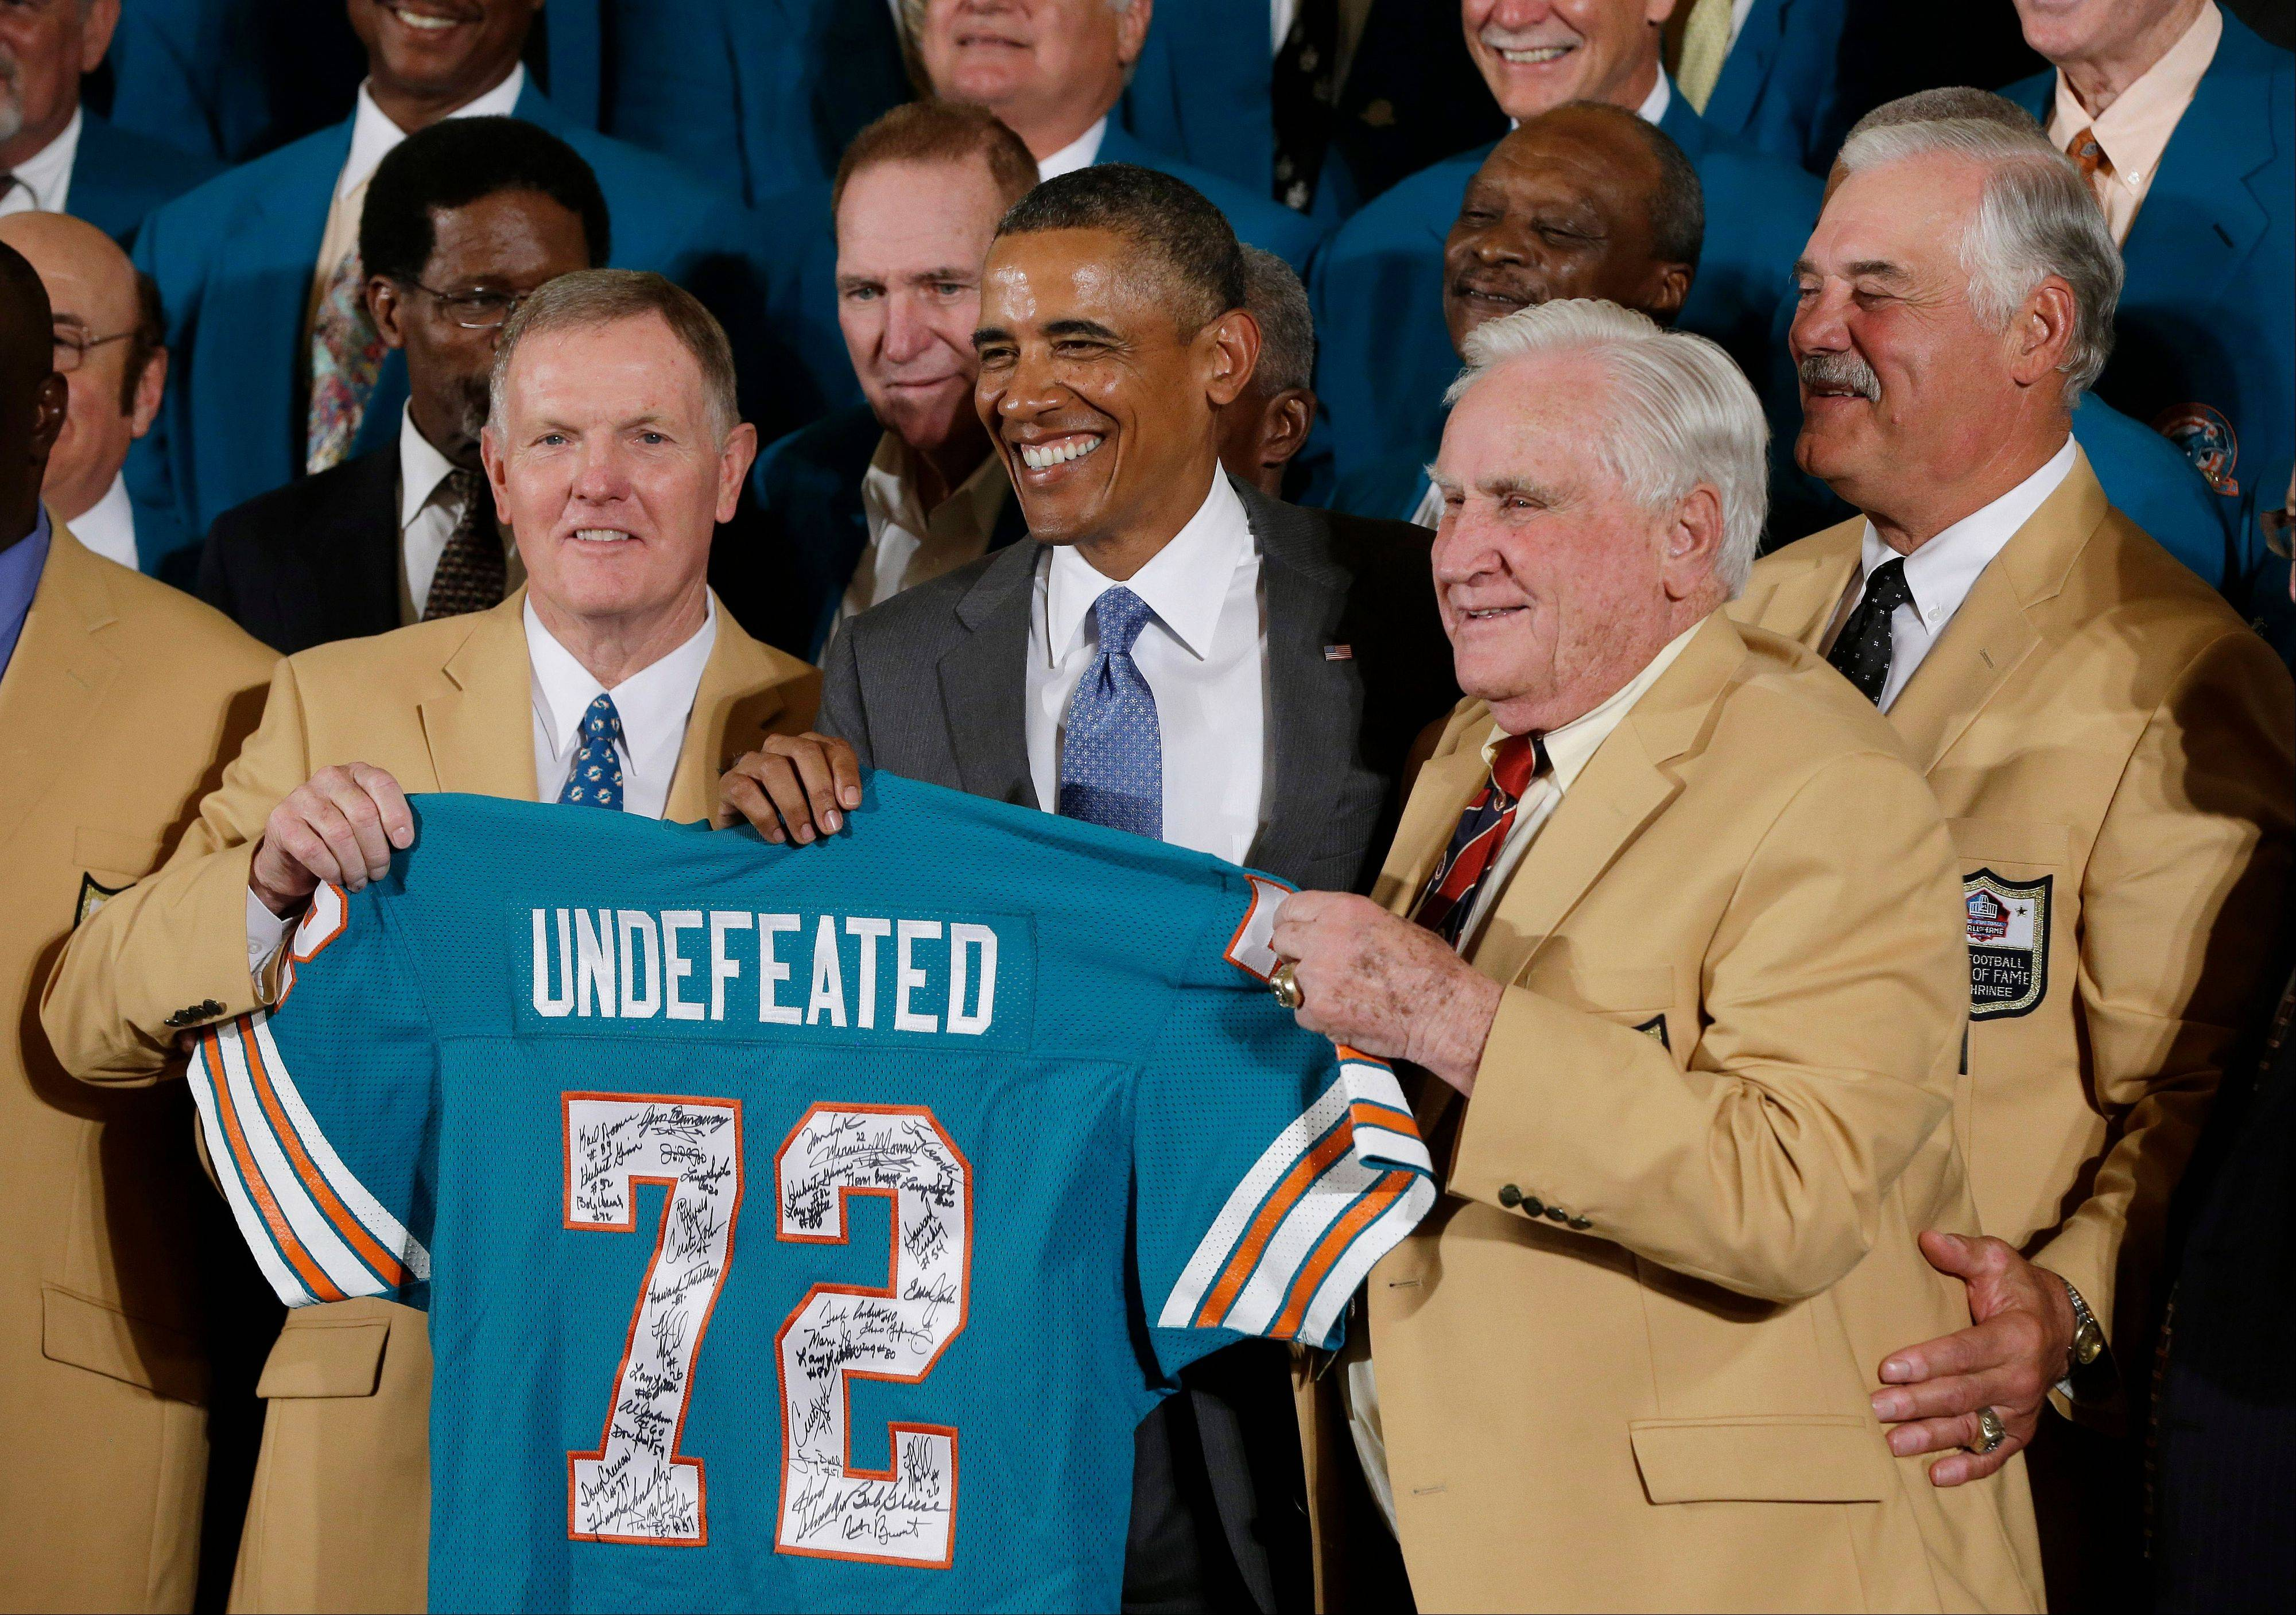 Former Miami Dolphins quarterback Bob Griese, left, and Hall of Fame Dolphins Coach Don Shula pose with President Barack Obama and a signed team jersey during a ceremony Tuesday in the East Room of the White House.